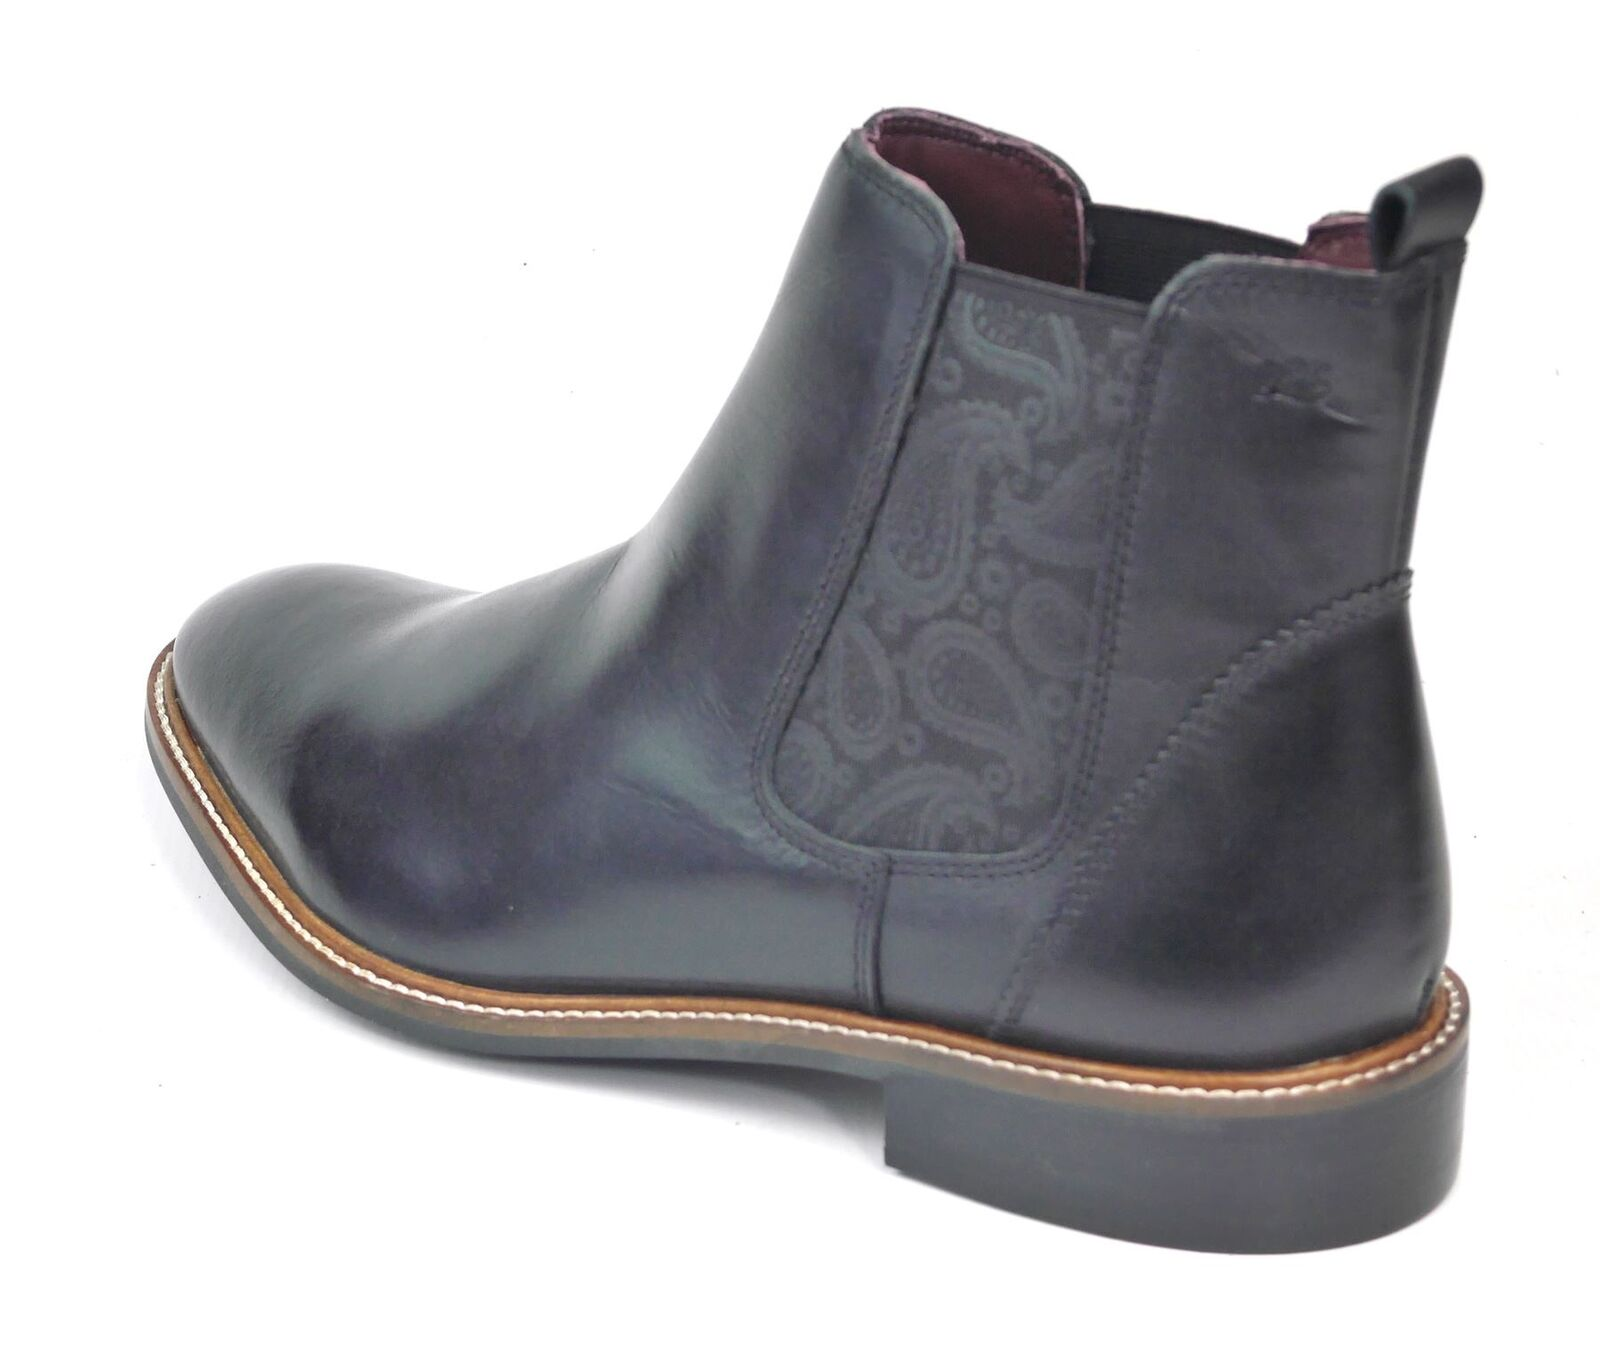 London Brogues Hamilton Leather Pull On Chelsea Boots Black / Parsley